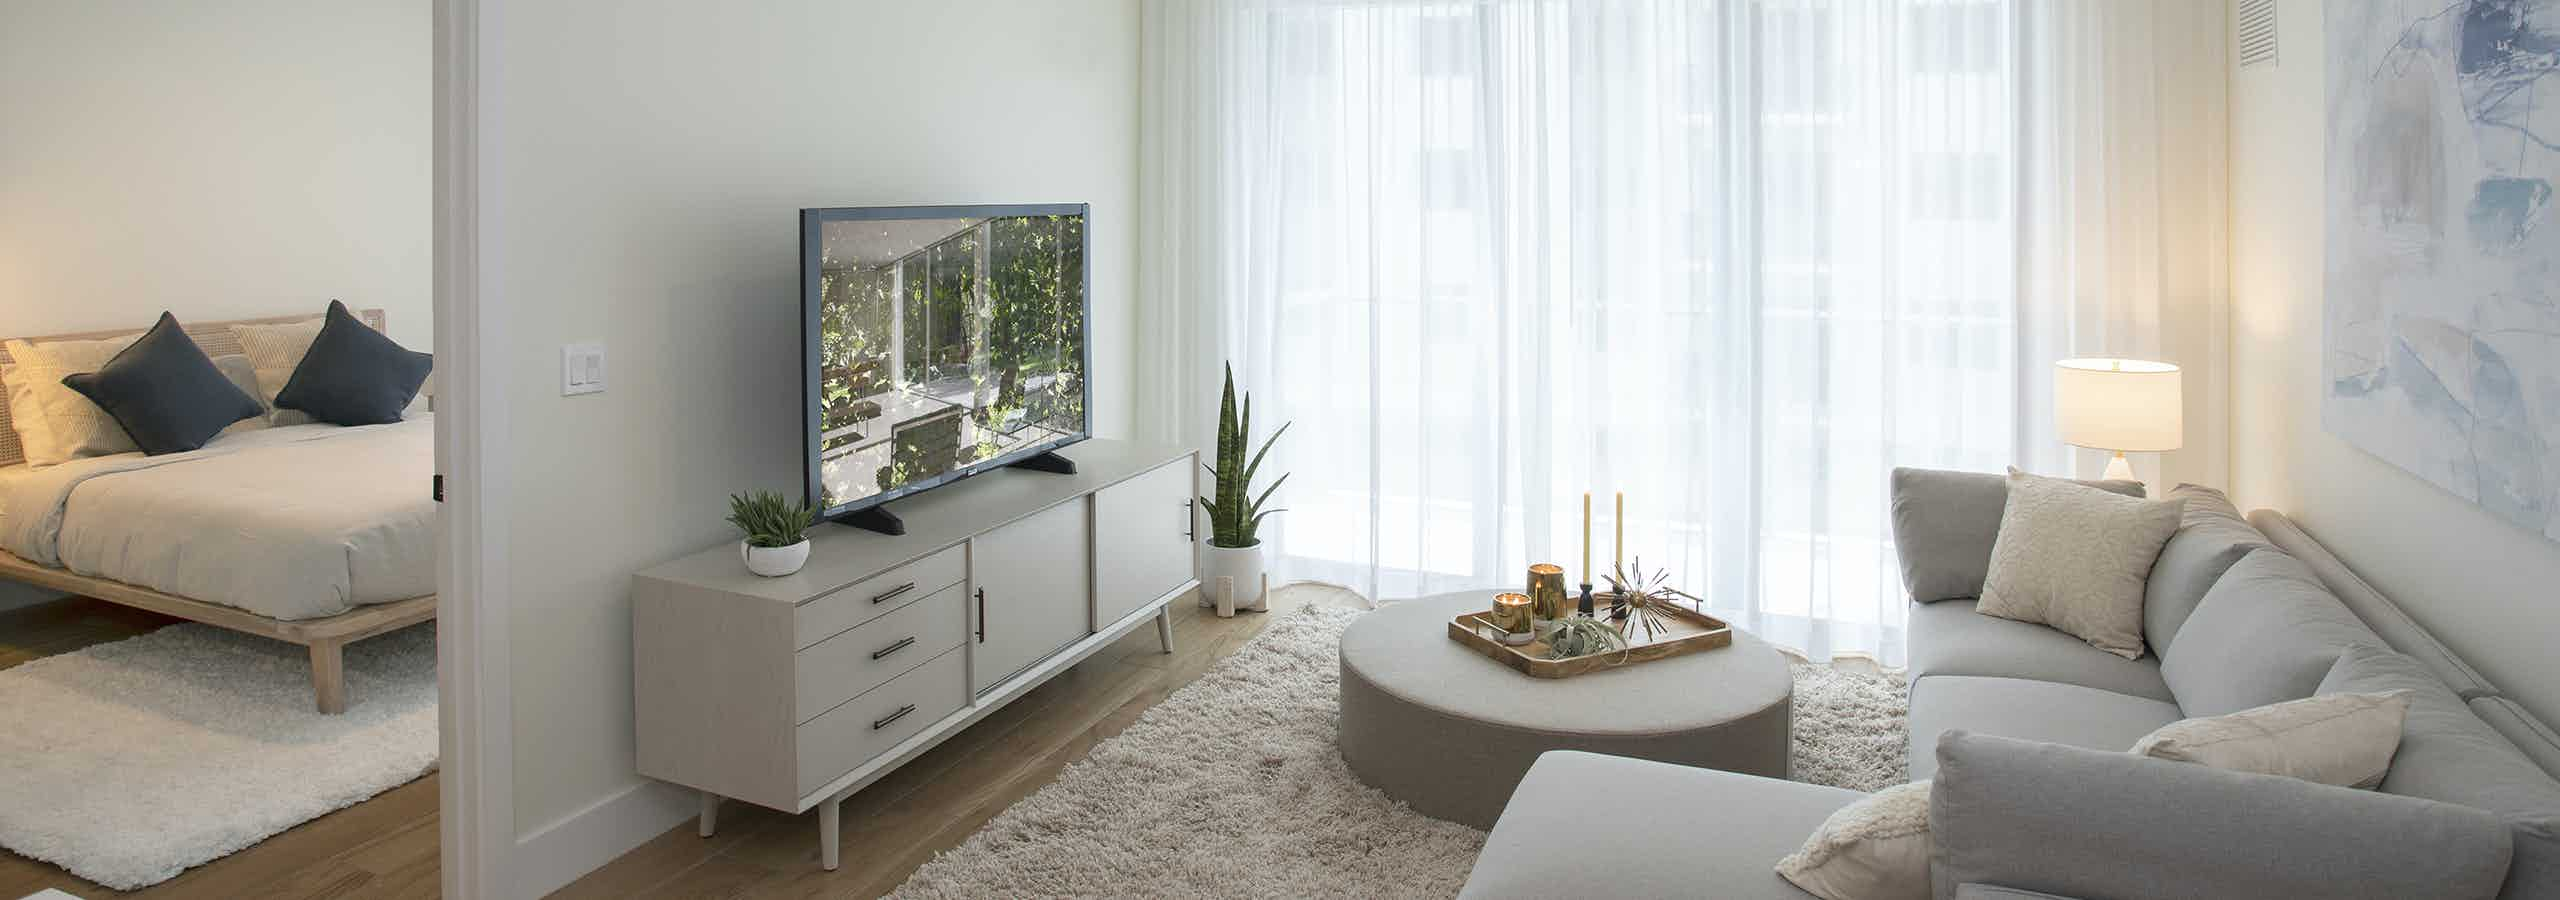 Living room with Travertine interior package